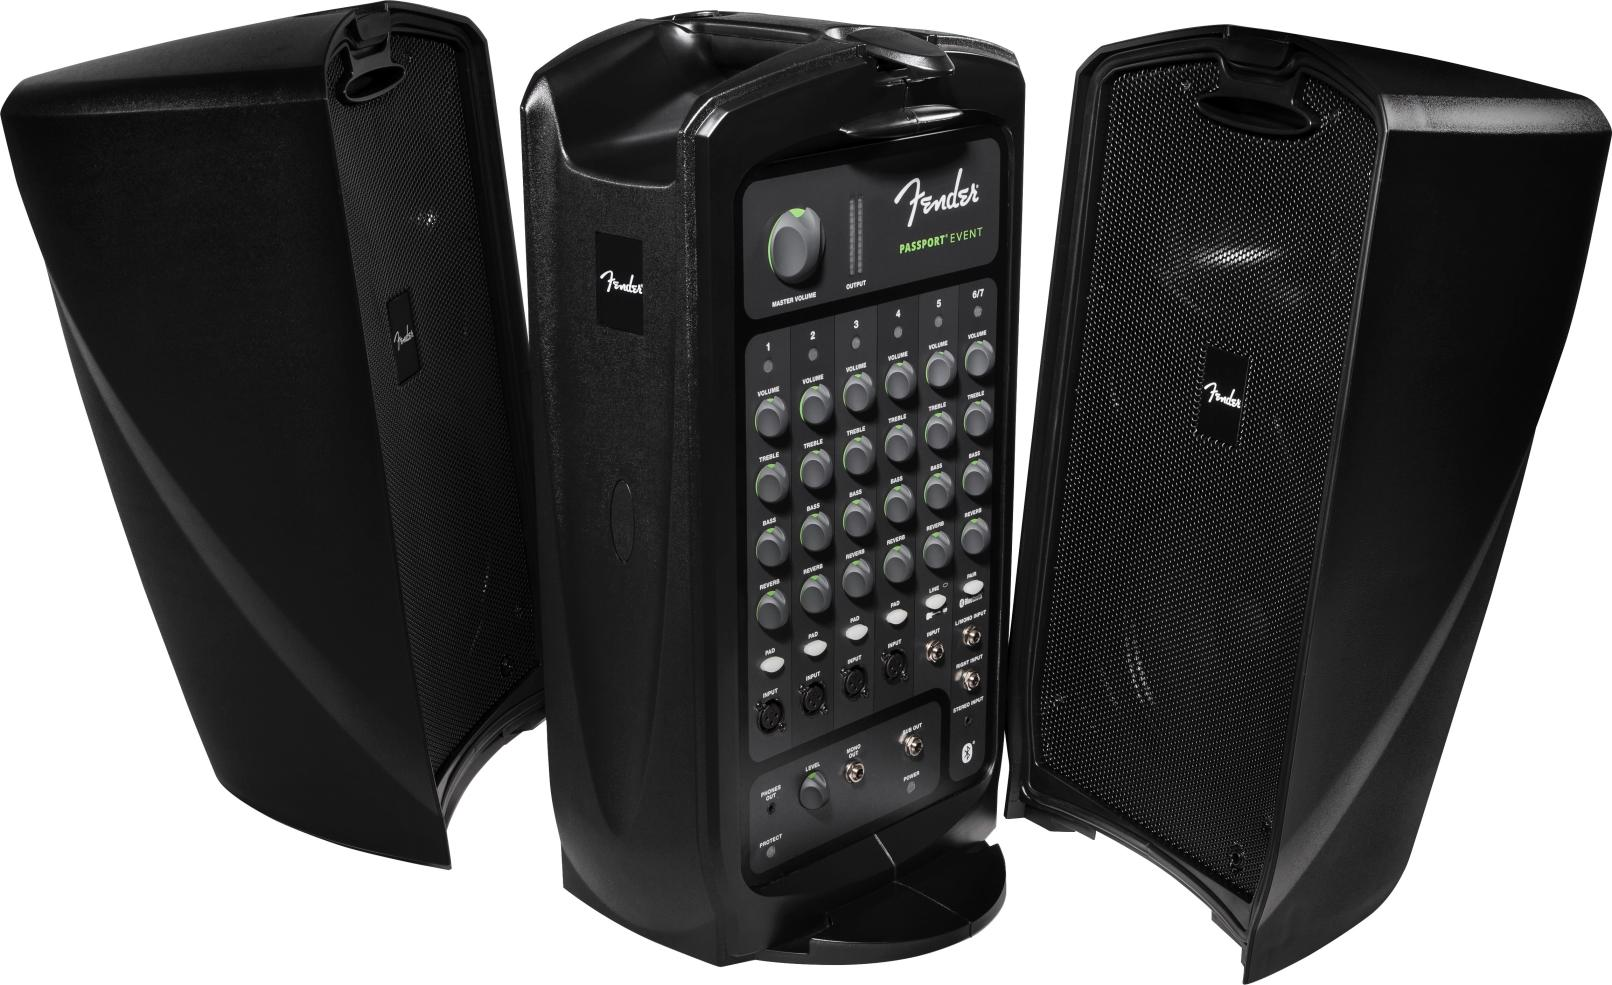 Amazon Fender Passport Event Pa System Musical Instruments